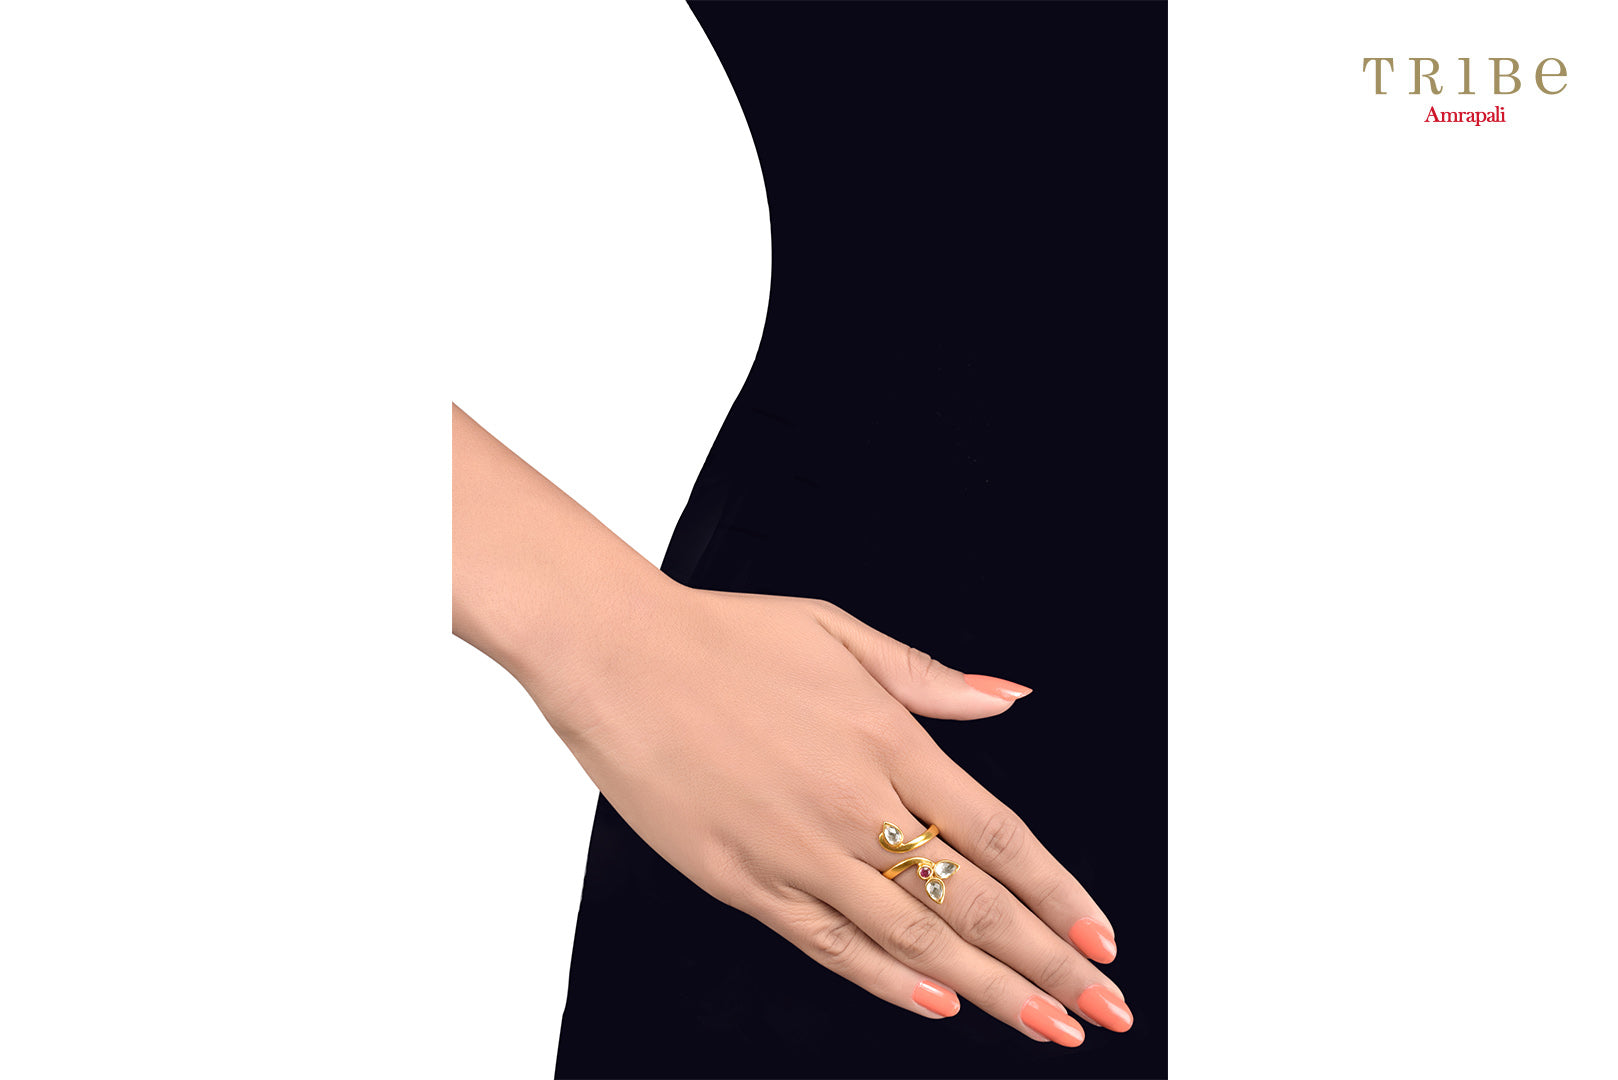 Buy delicate silver gold plated crystal leaf ring online in USA by Tribe Amrapali. The crystal ring is a unique jewelry piece for your hands. If you want to shop such ethnic Indian silver gold plated jewelry in USA, then look no further than Pure Elegance. You can shop at our exclusive fashion store or online.-hands view